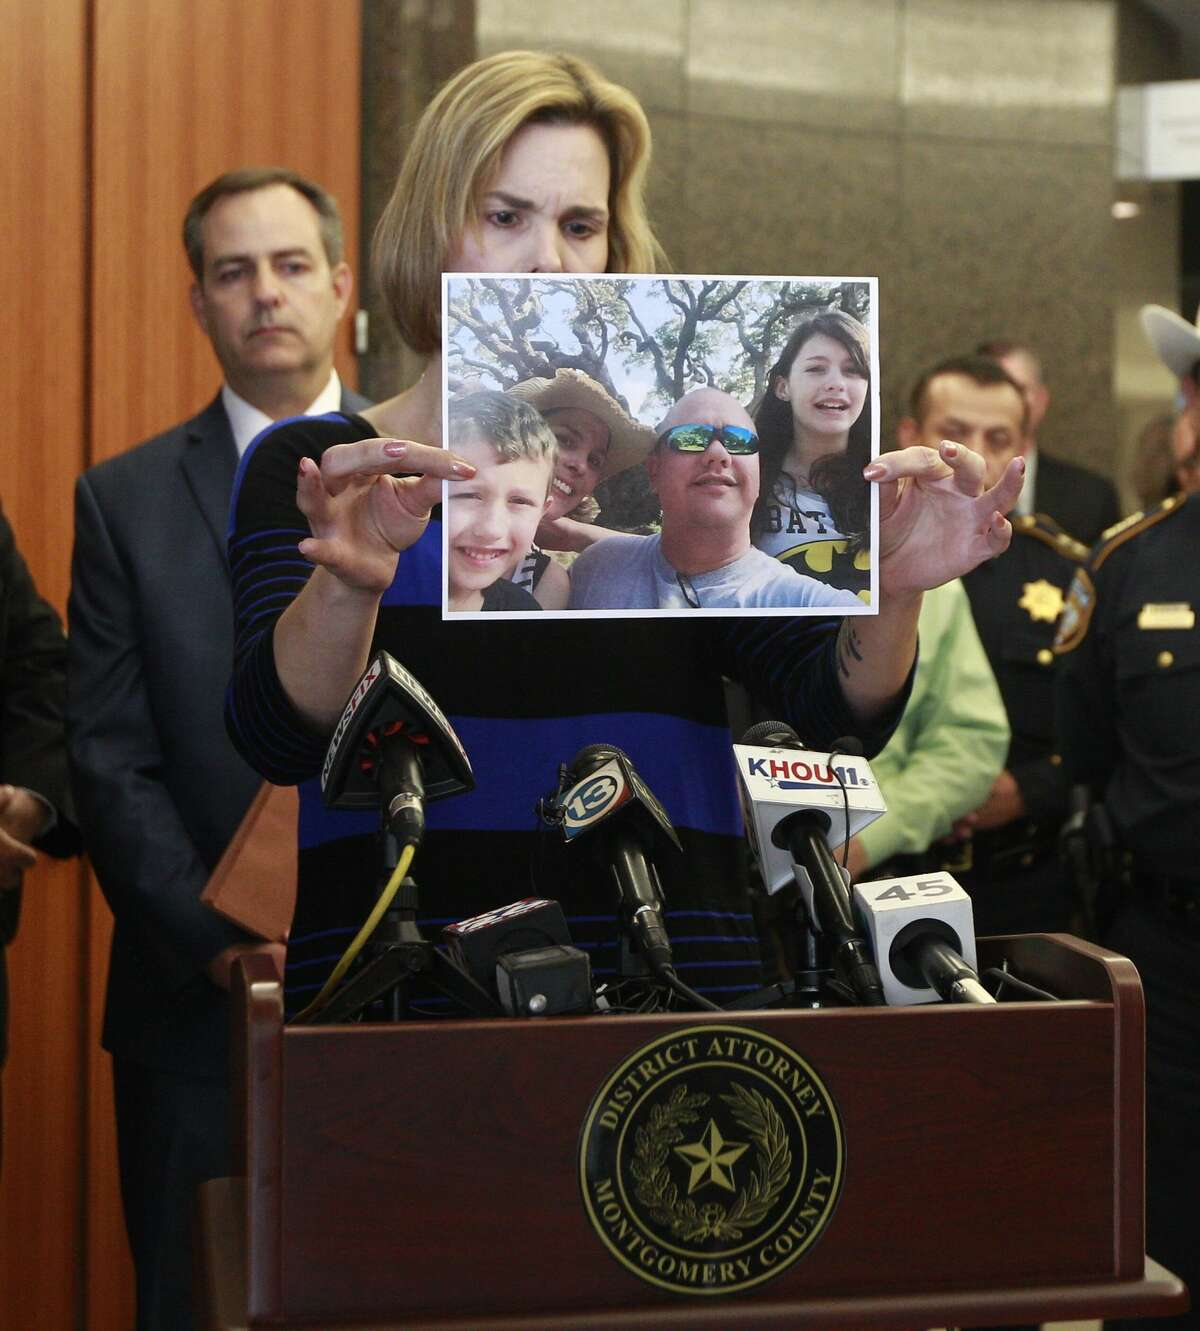 Kathleen Goforth, widow of Harris County Sheriff's Deputy Darren Goforth, shows photos of her family during a press conference at the Harris County Civil Courthouse, Wednesday, Sept. 13, 2017, in Houston. Shannon Miles, 32, pleaded guilty to capital murder and was sentenced to life without parole for fatally shooting her husband on Aug. 28, 2015, as he was filling up his patrol car at a gas station in Northeast Harris County.